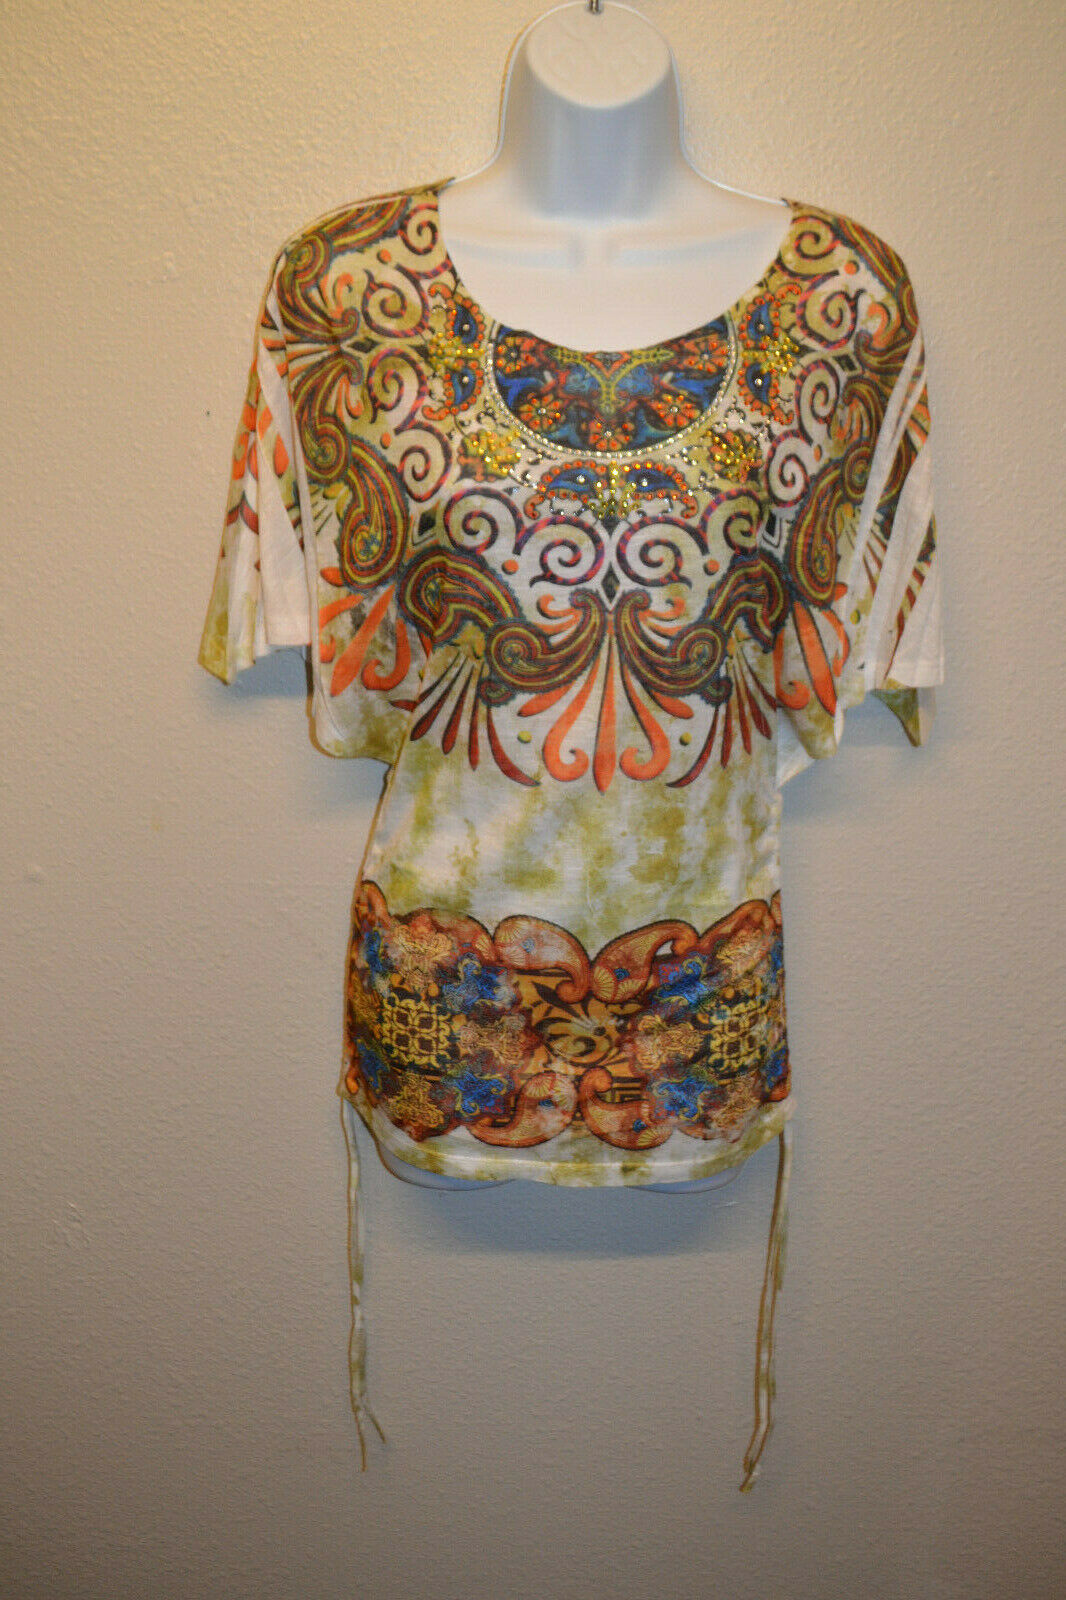 Ladies Women's SMALL Panhandle Slim Short Sleeve Blouse Shirt T-Shirt Multicolor